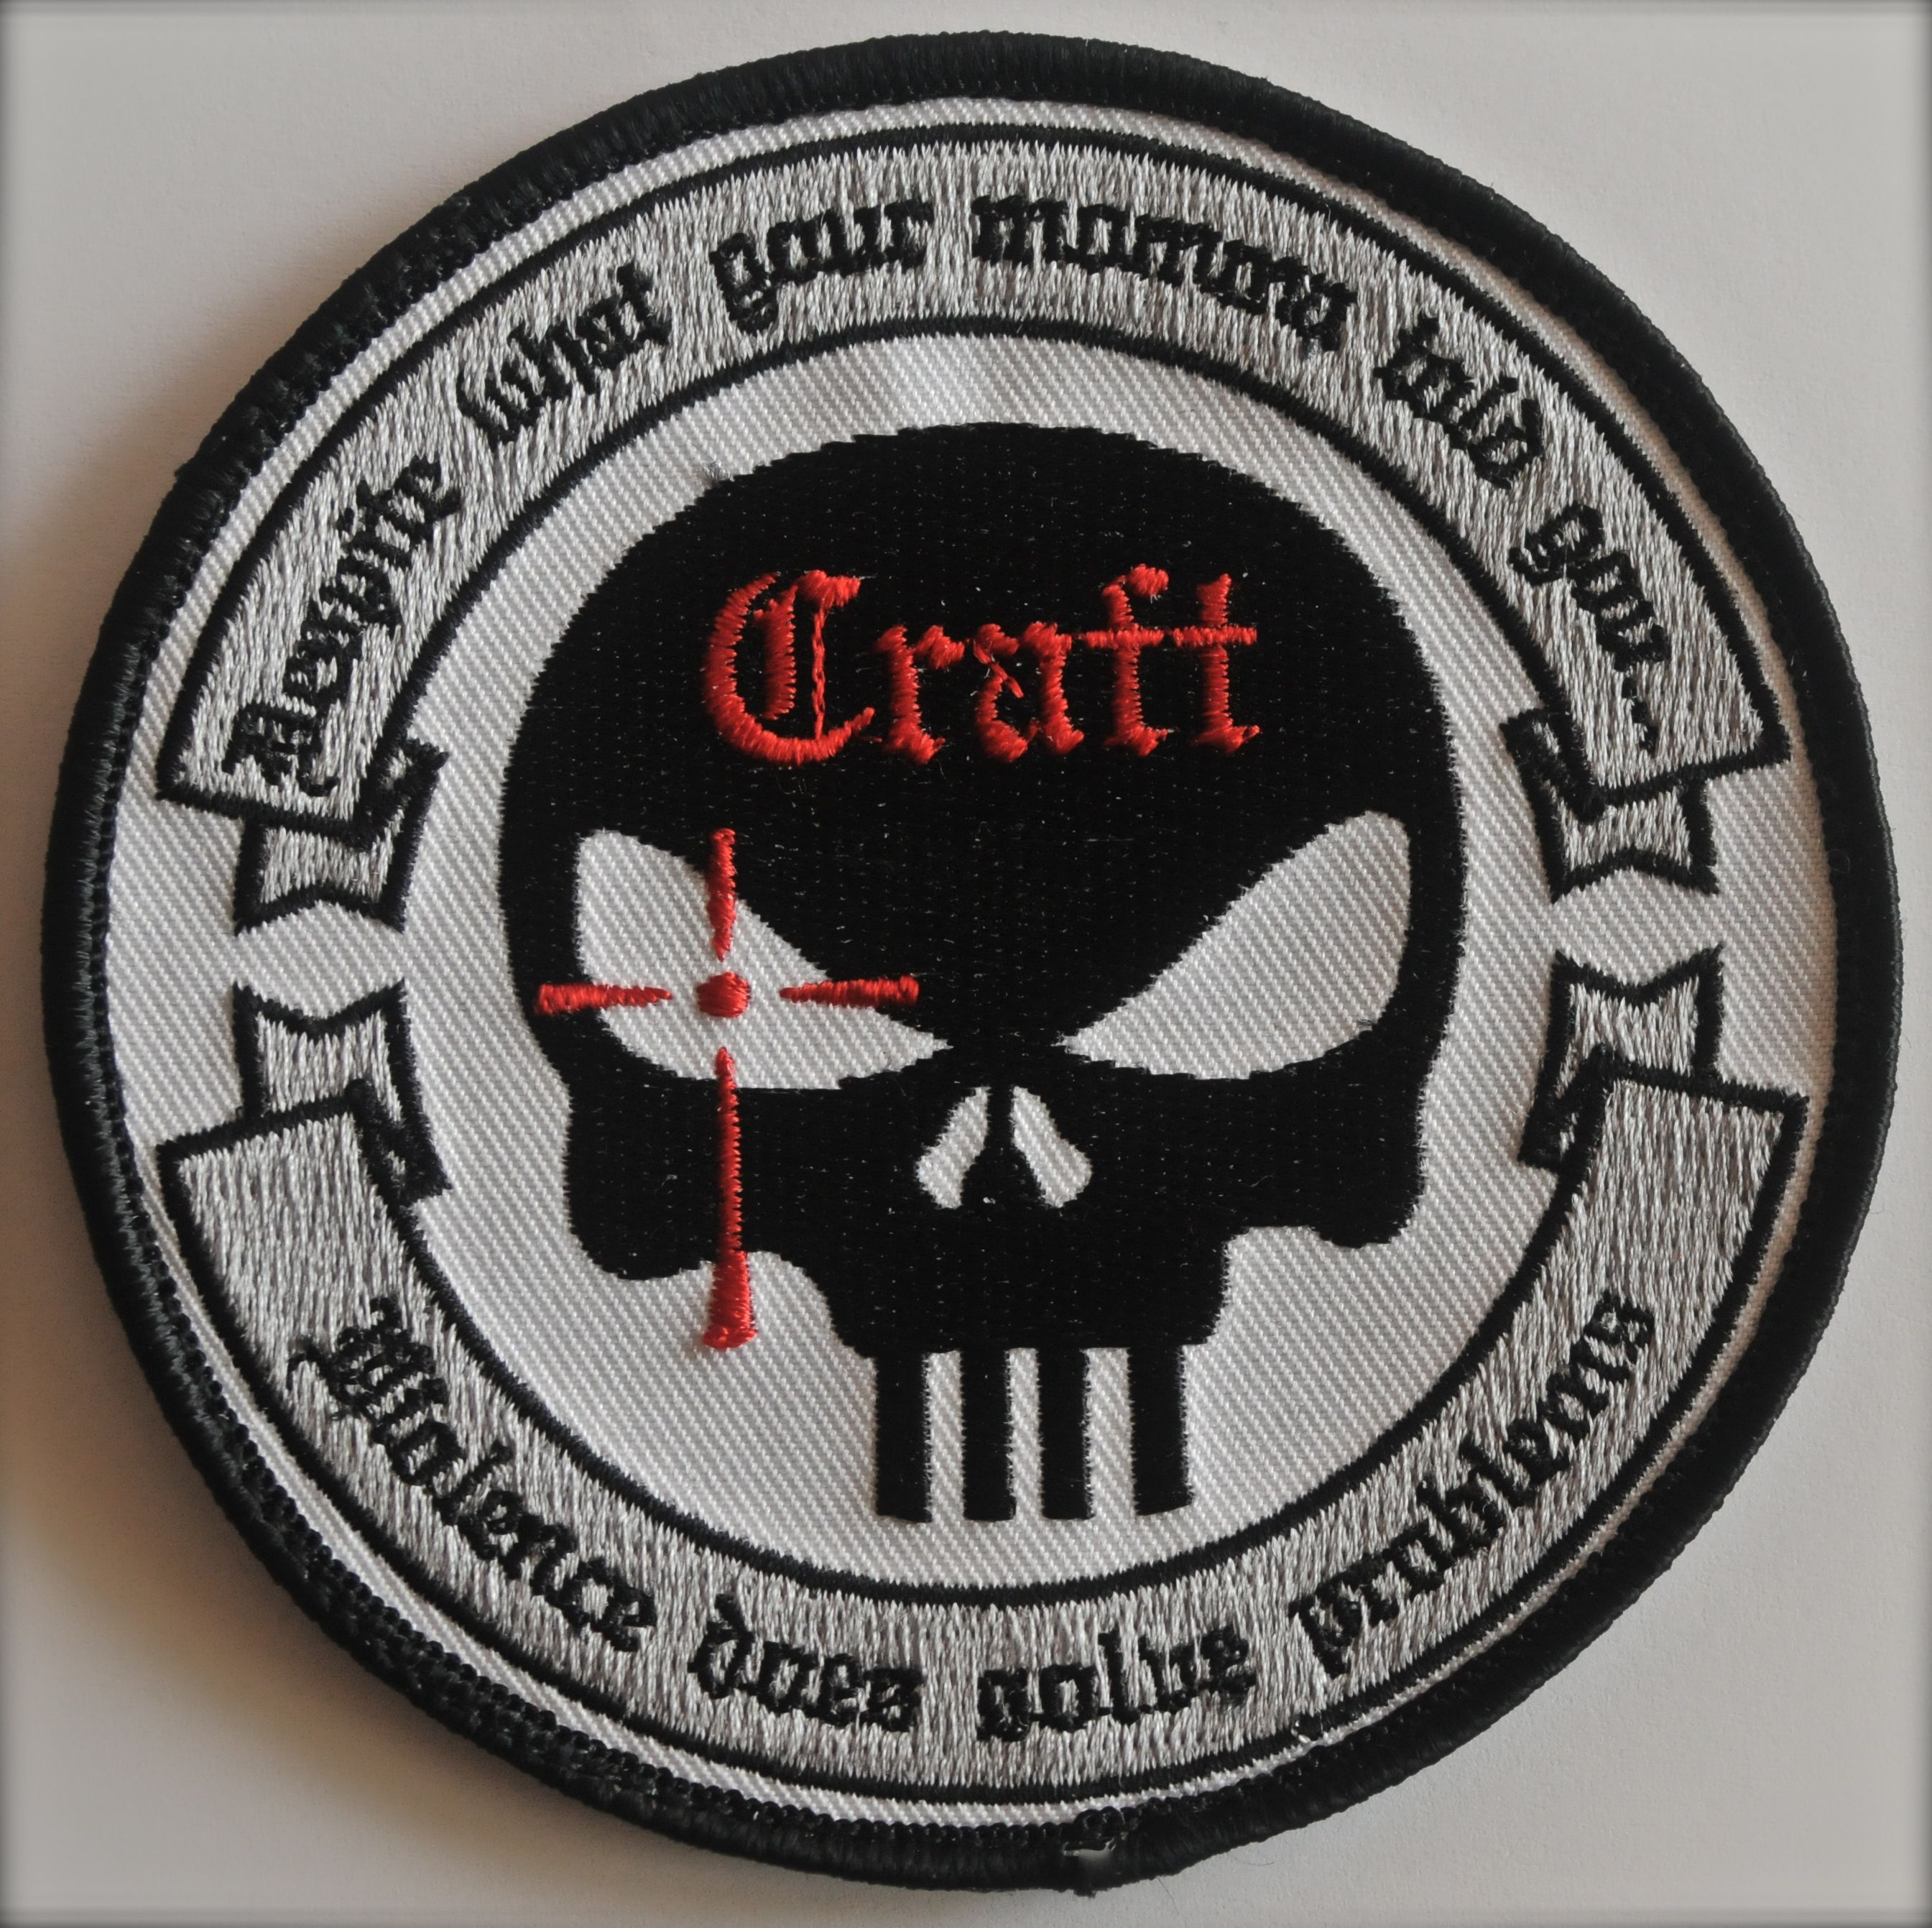 a36726d221f Authentic Chris Kyle merchandise -- Craft International patch (gray and  black)